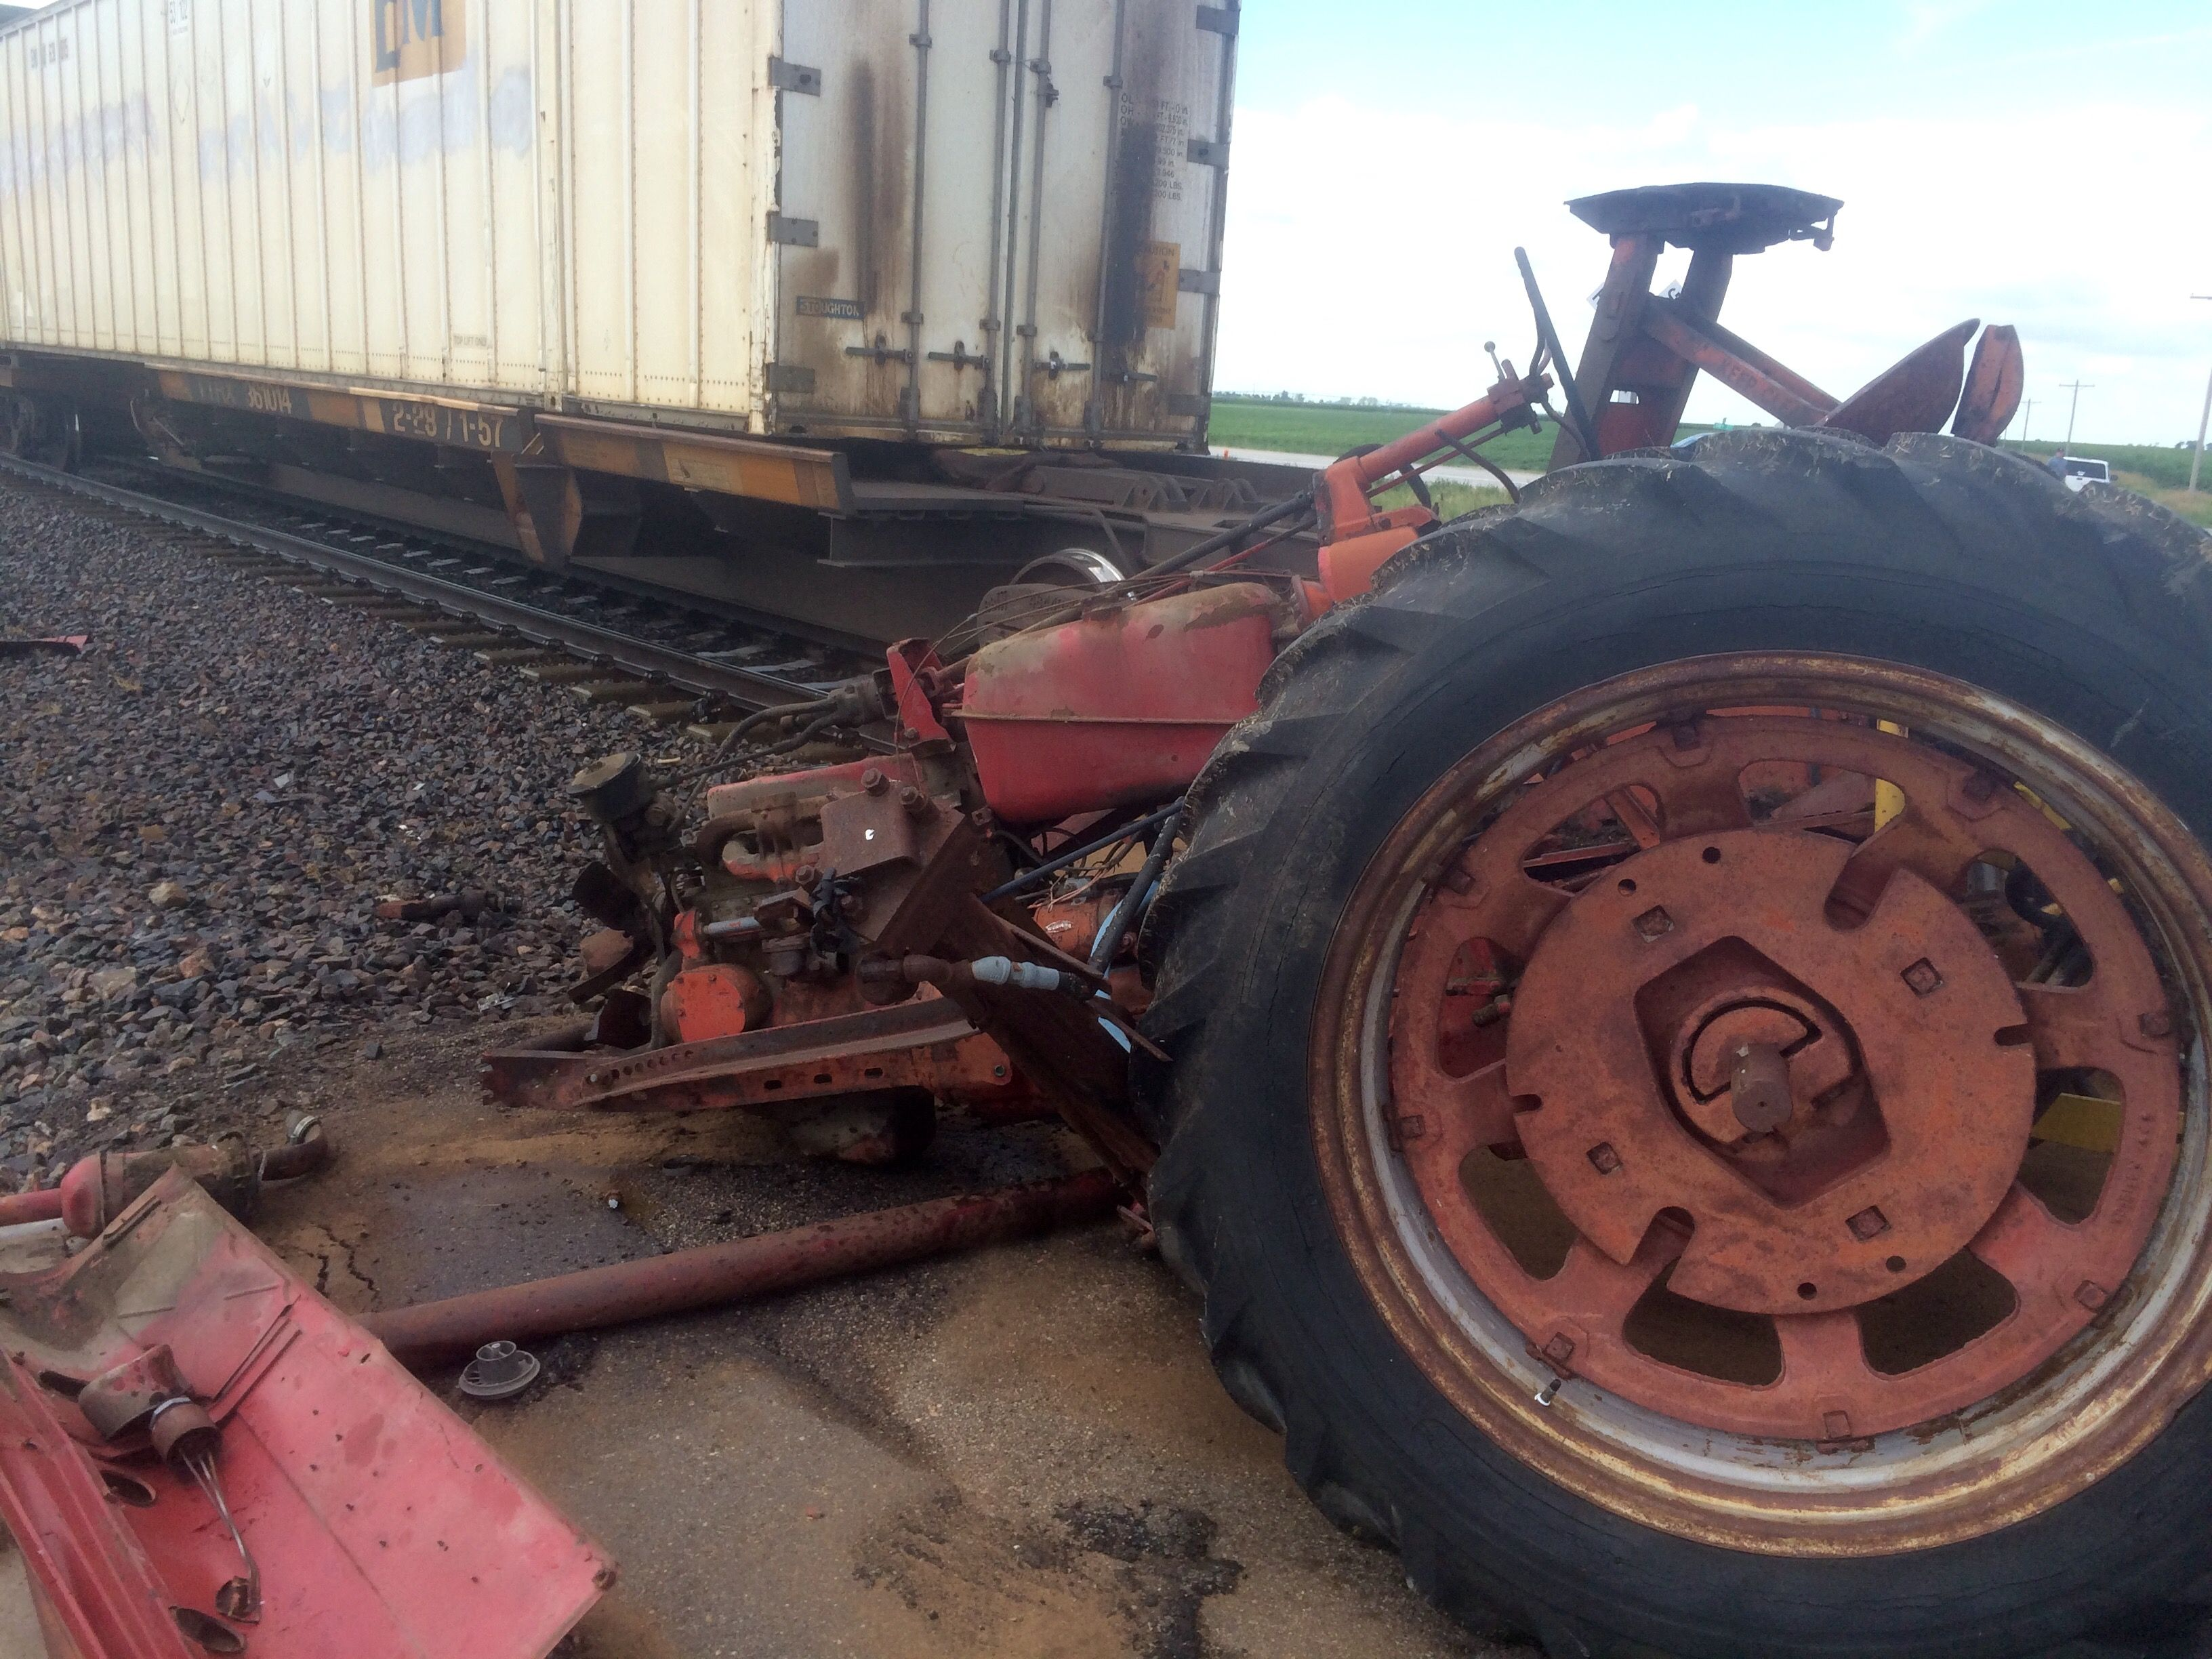 Tractor Pulling Train : Train smashes through stalled tractor york s max country